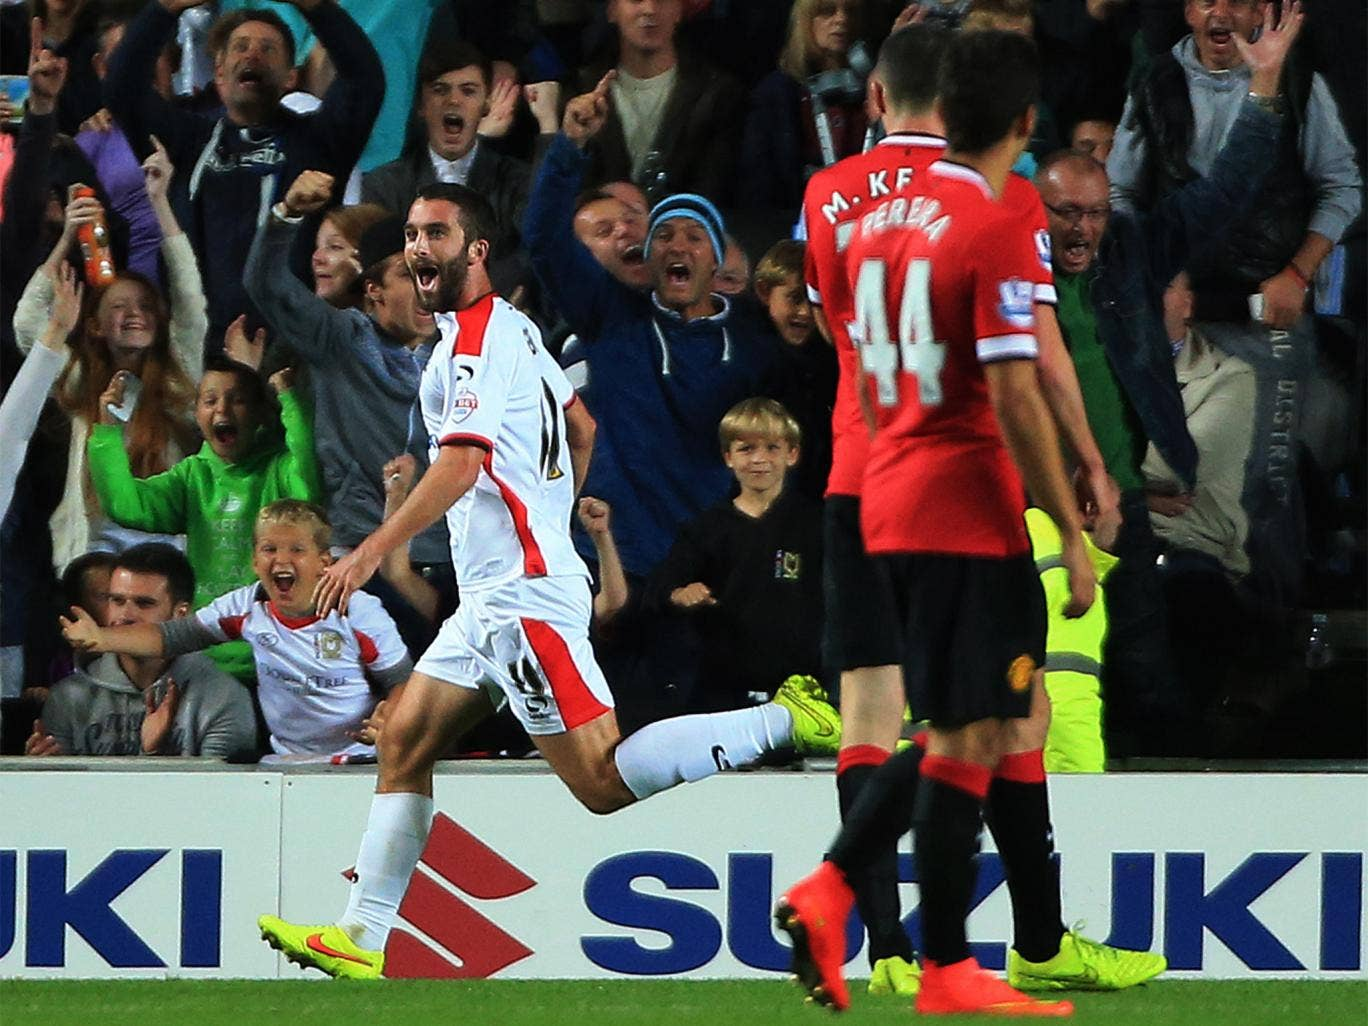 MK Dons' Will Grigg celebrates after scoring the second